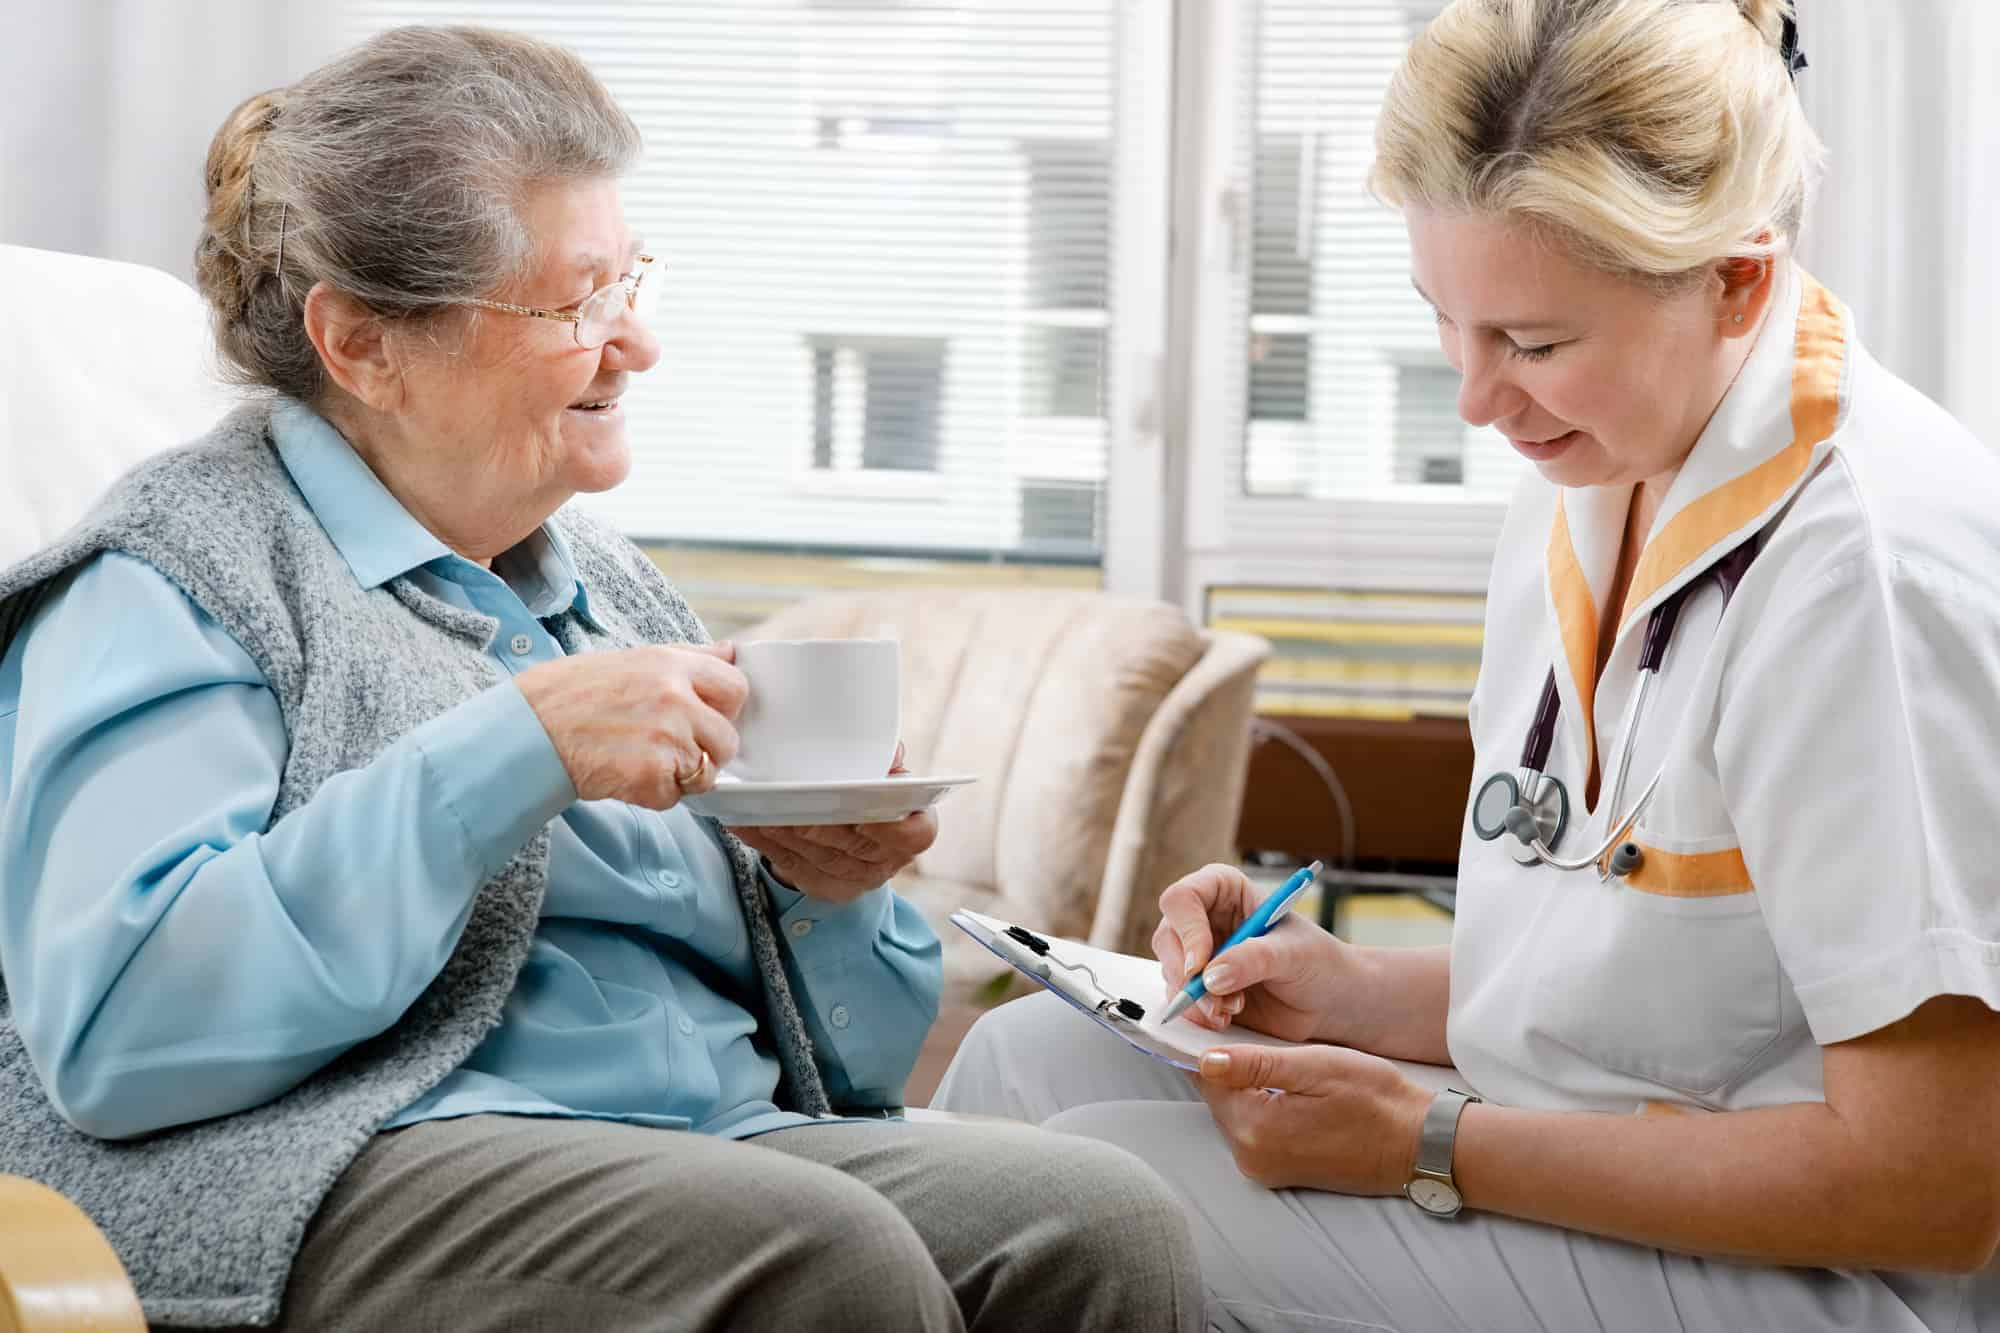 As the population ages, the need for convenient at-home care will only increase, and semi-solid topical drug products will be a crucial part of that care.